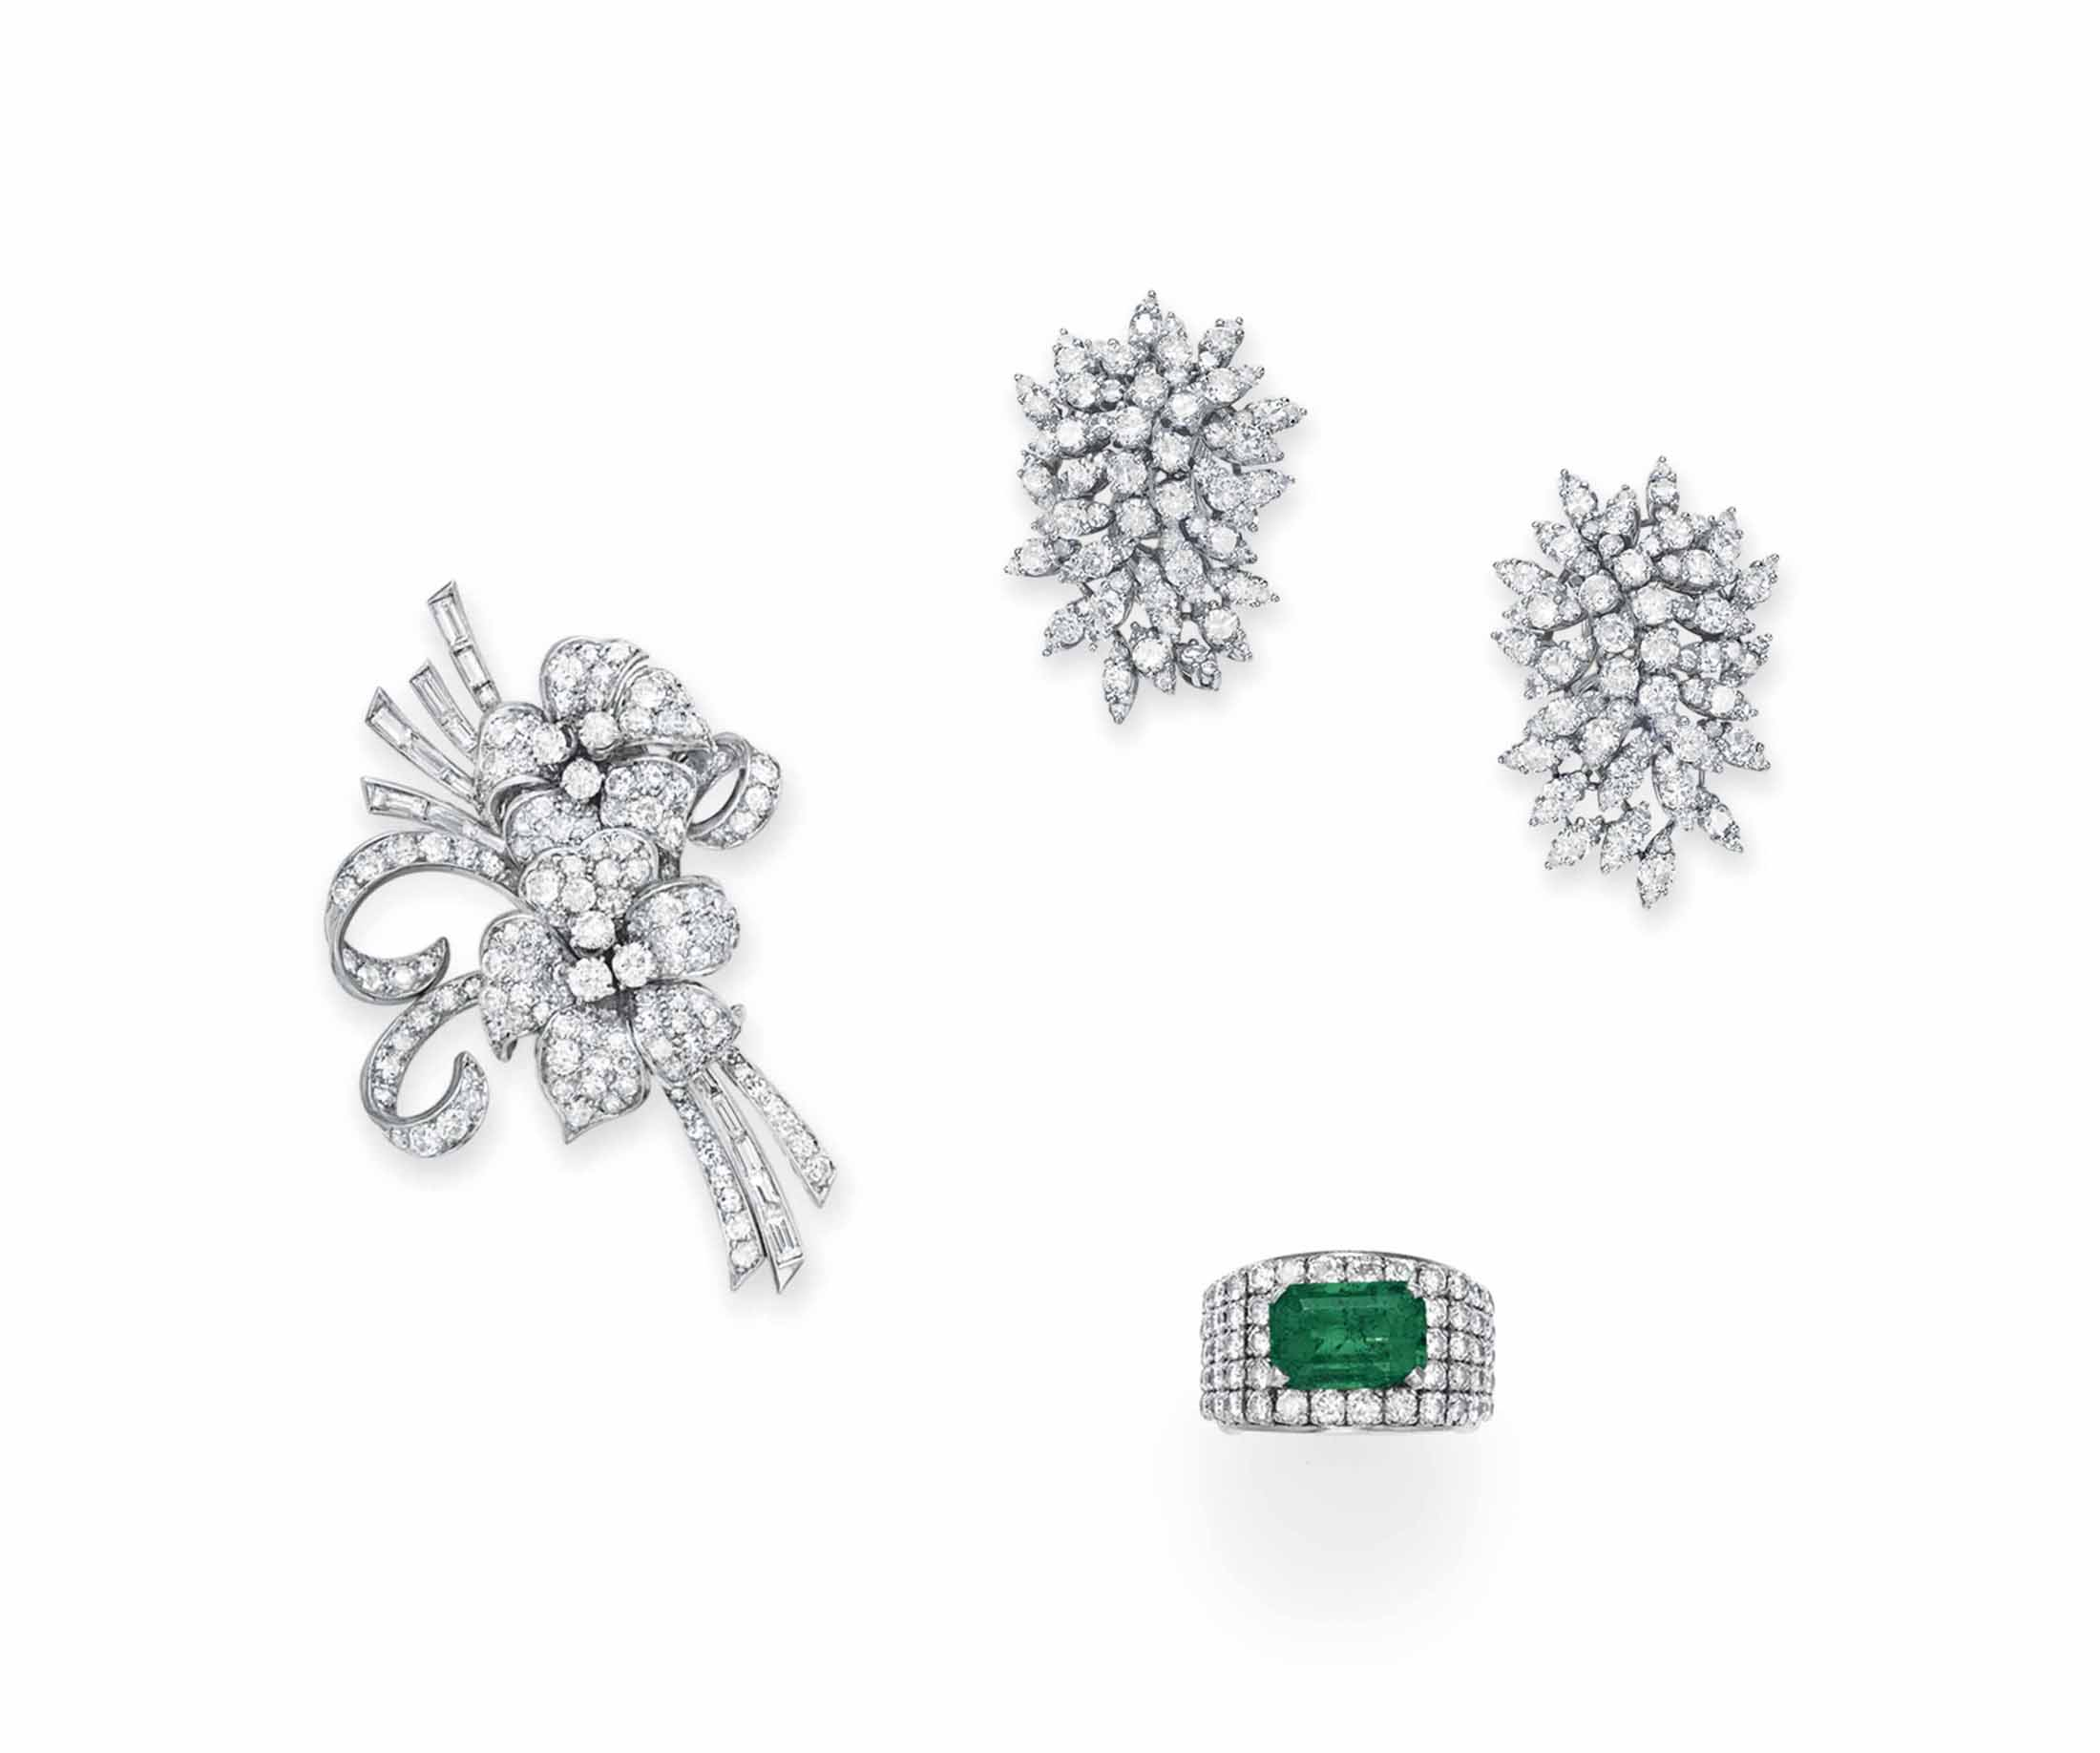 A GROUP OF DIAMOND AND EMERALD